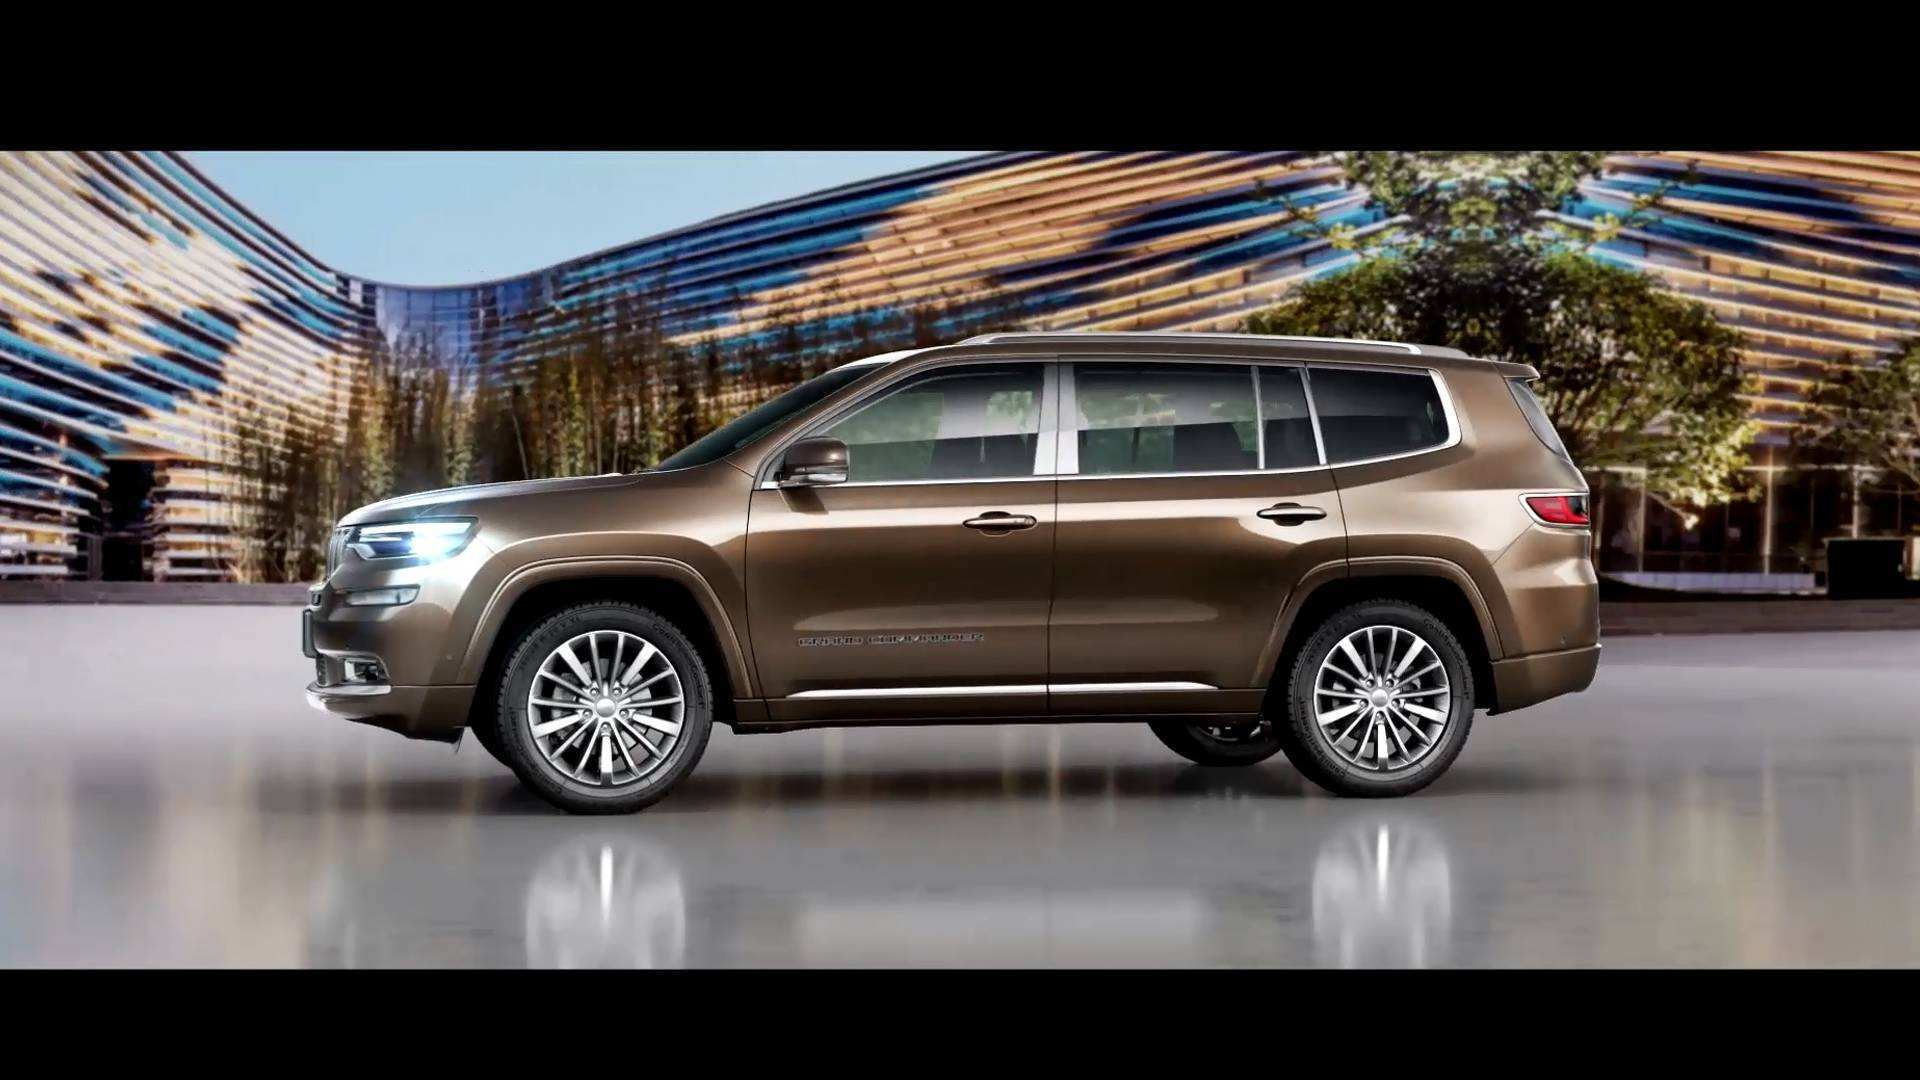 93 All New 2020 Jeep Commander Photos for 2020 Jeep Commander